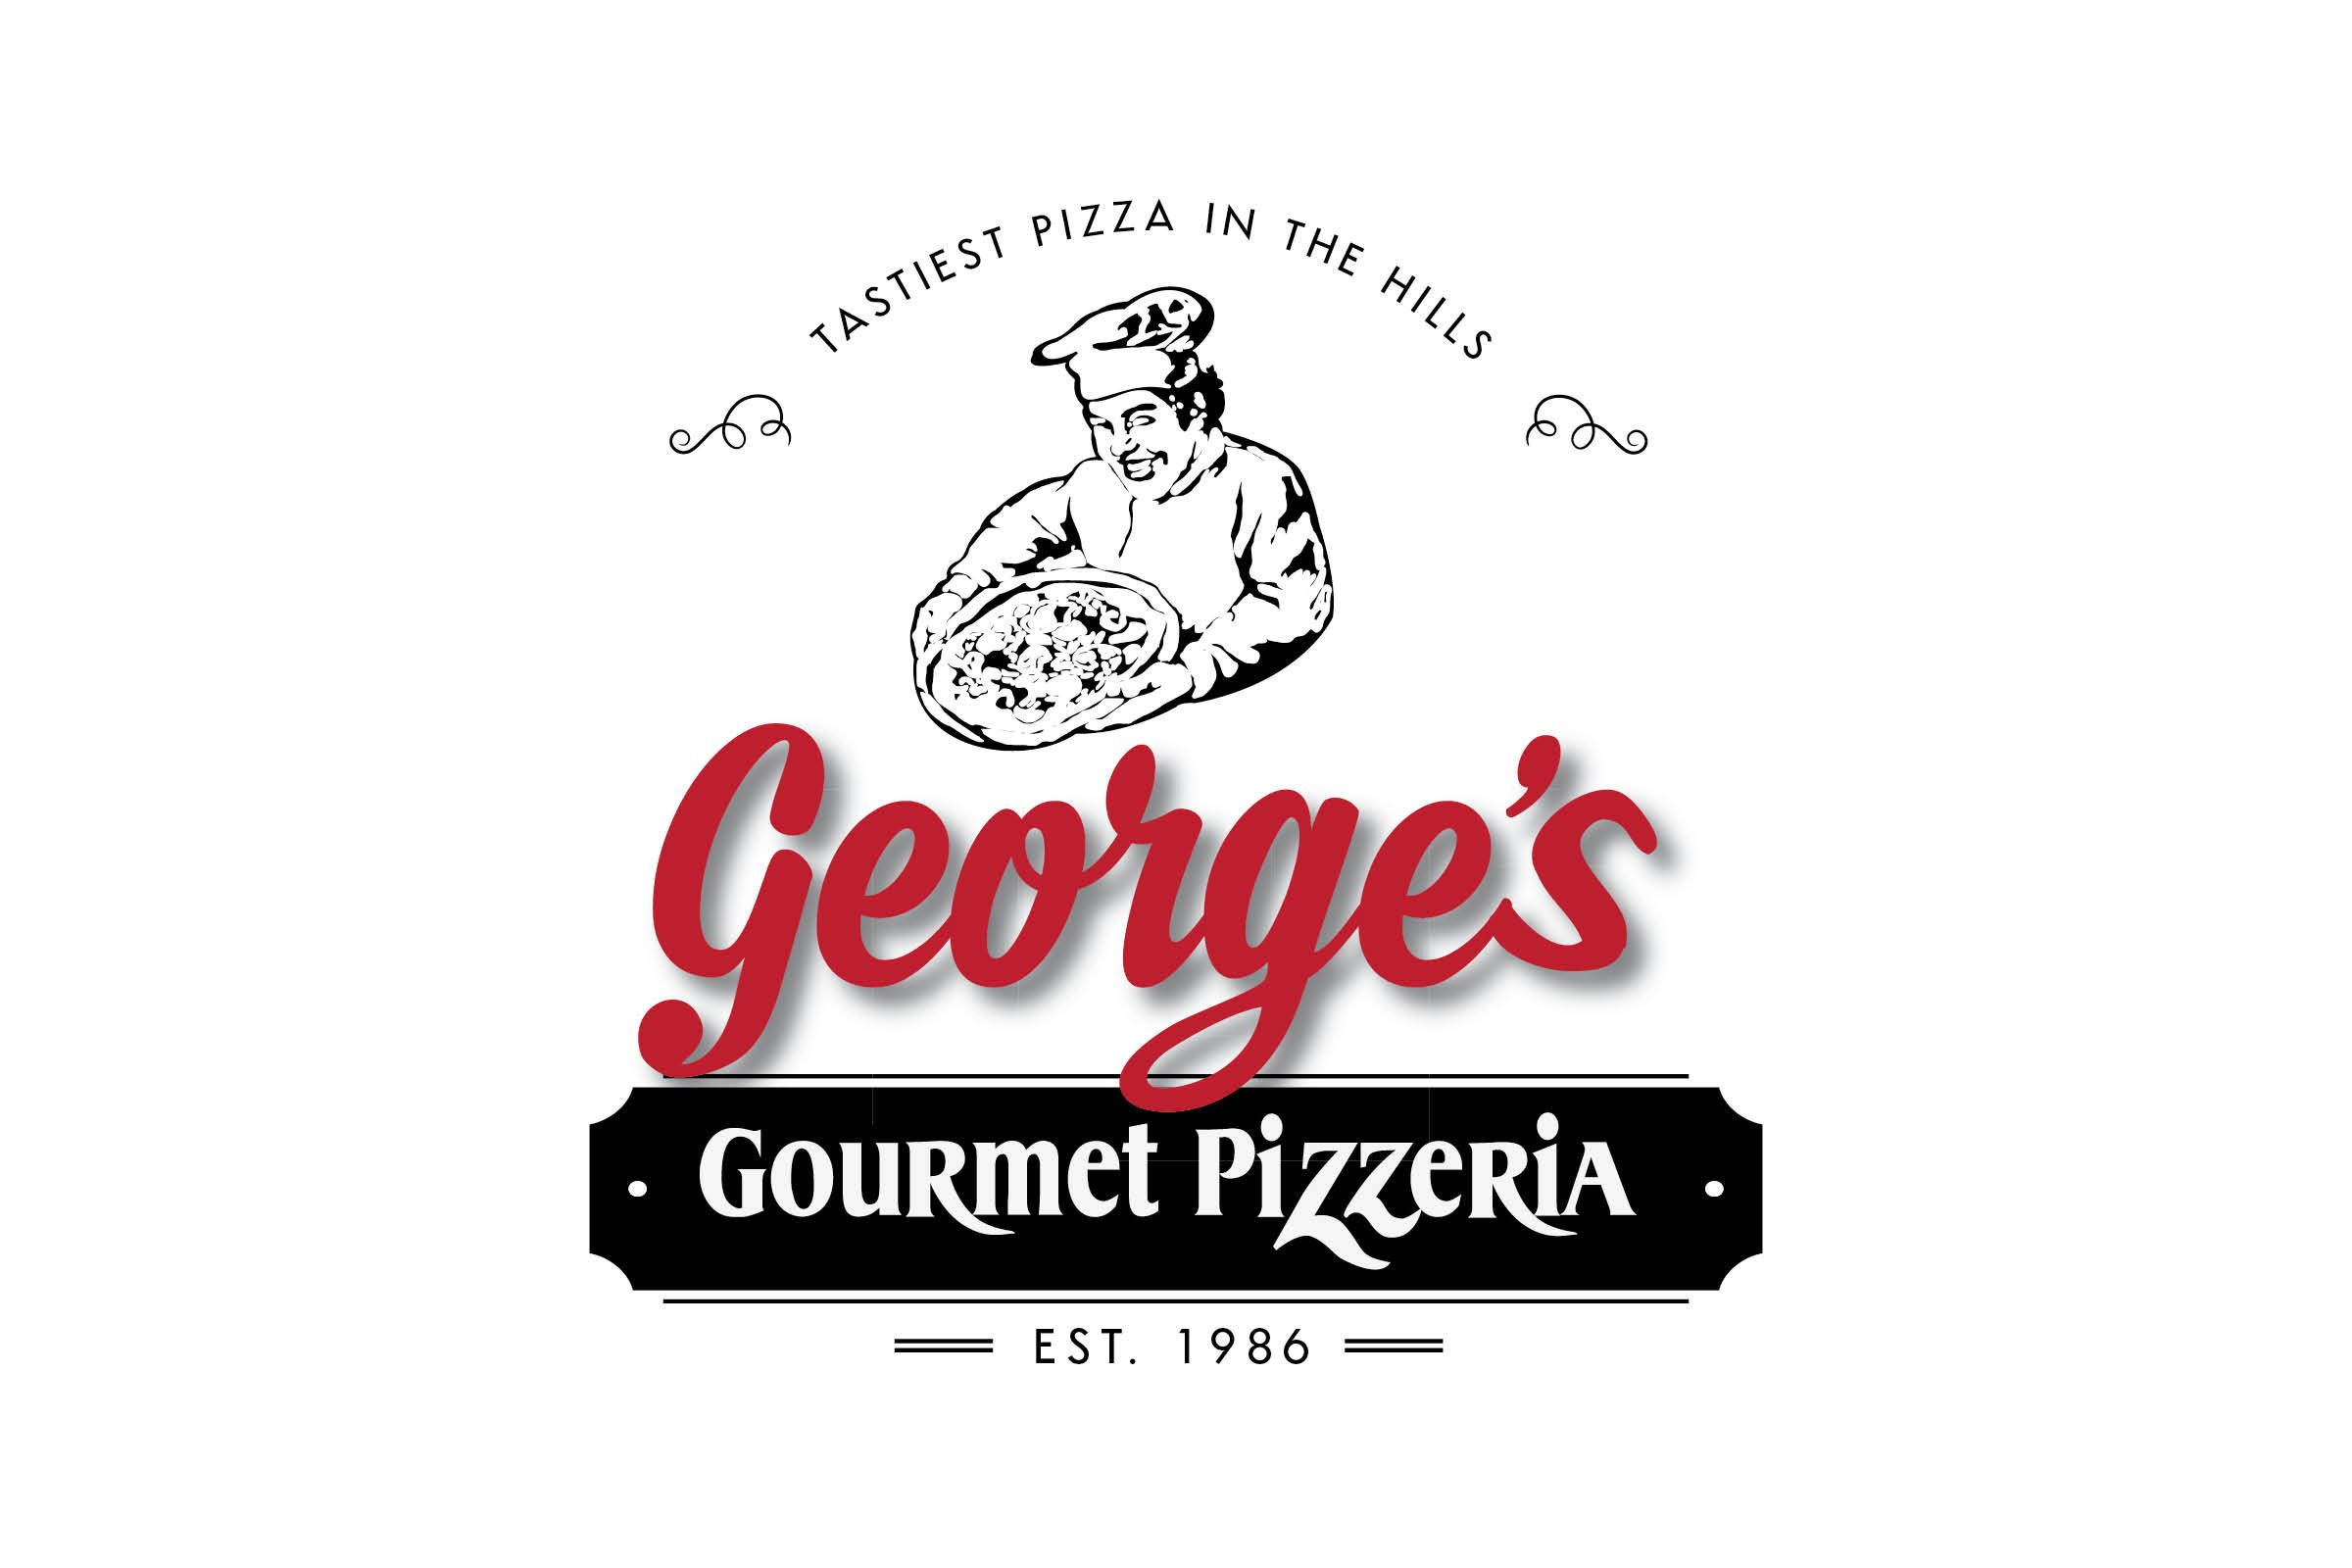 Georges Gourmet Pizza | Banquet Menu | Italian | Restaurant Logo Refresh | Pizza Logo | Black | Red | Illustration